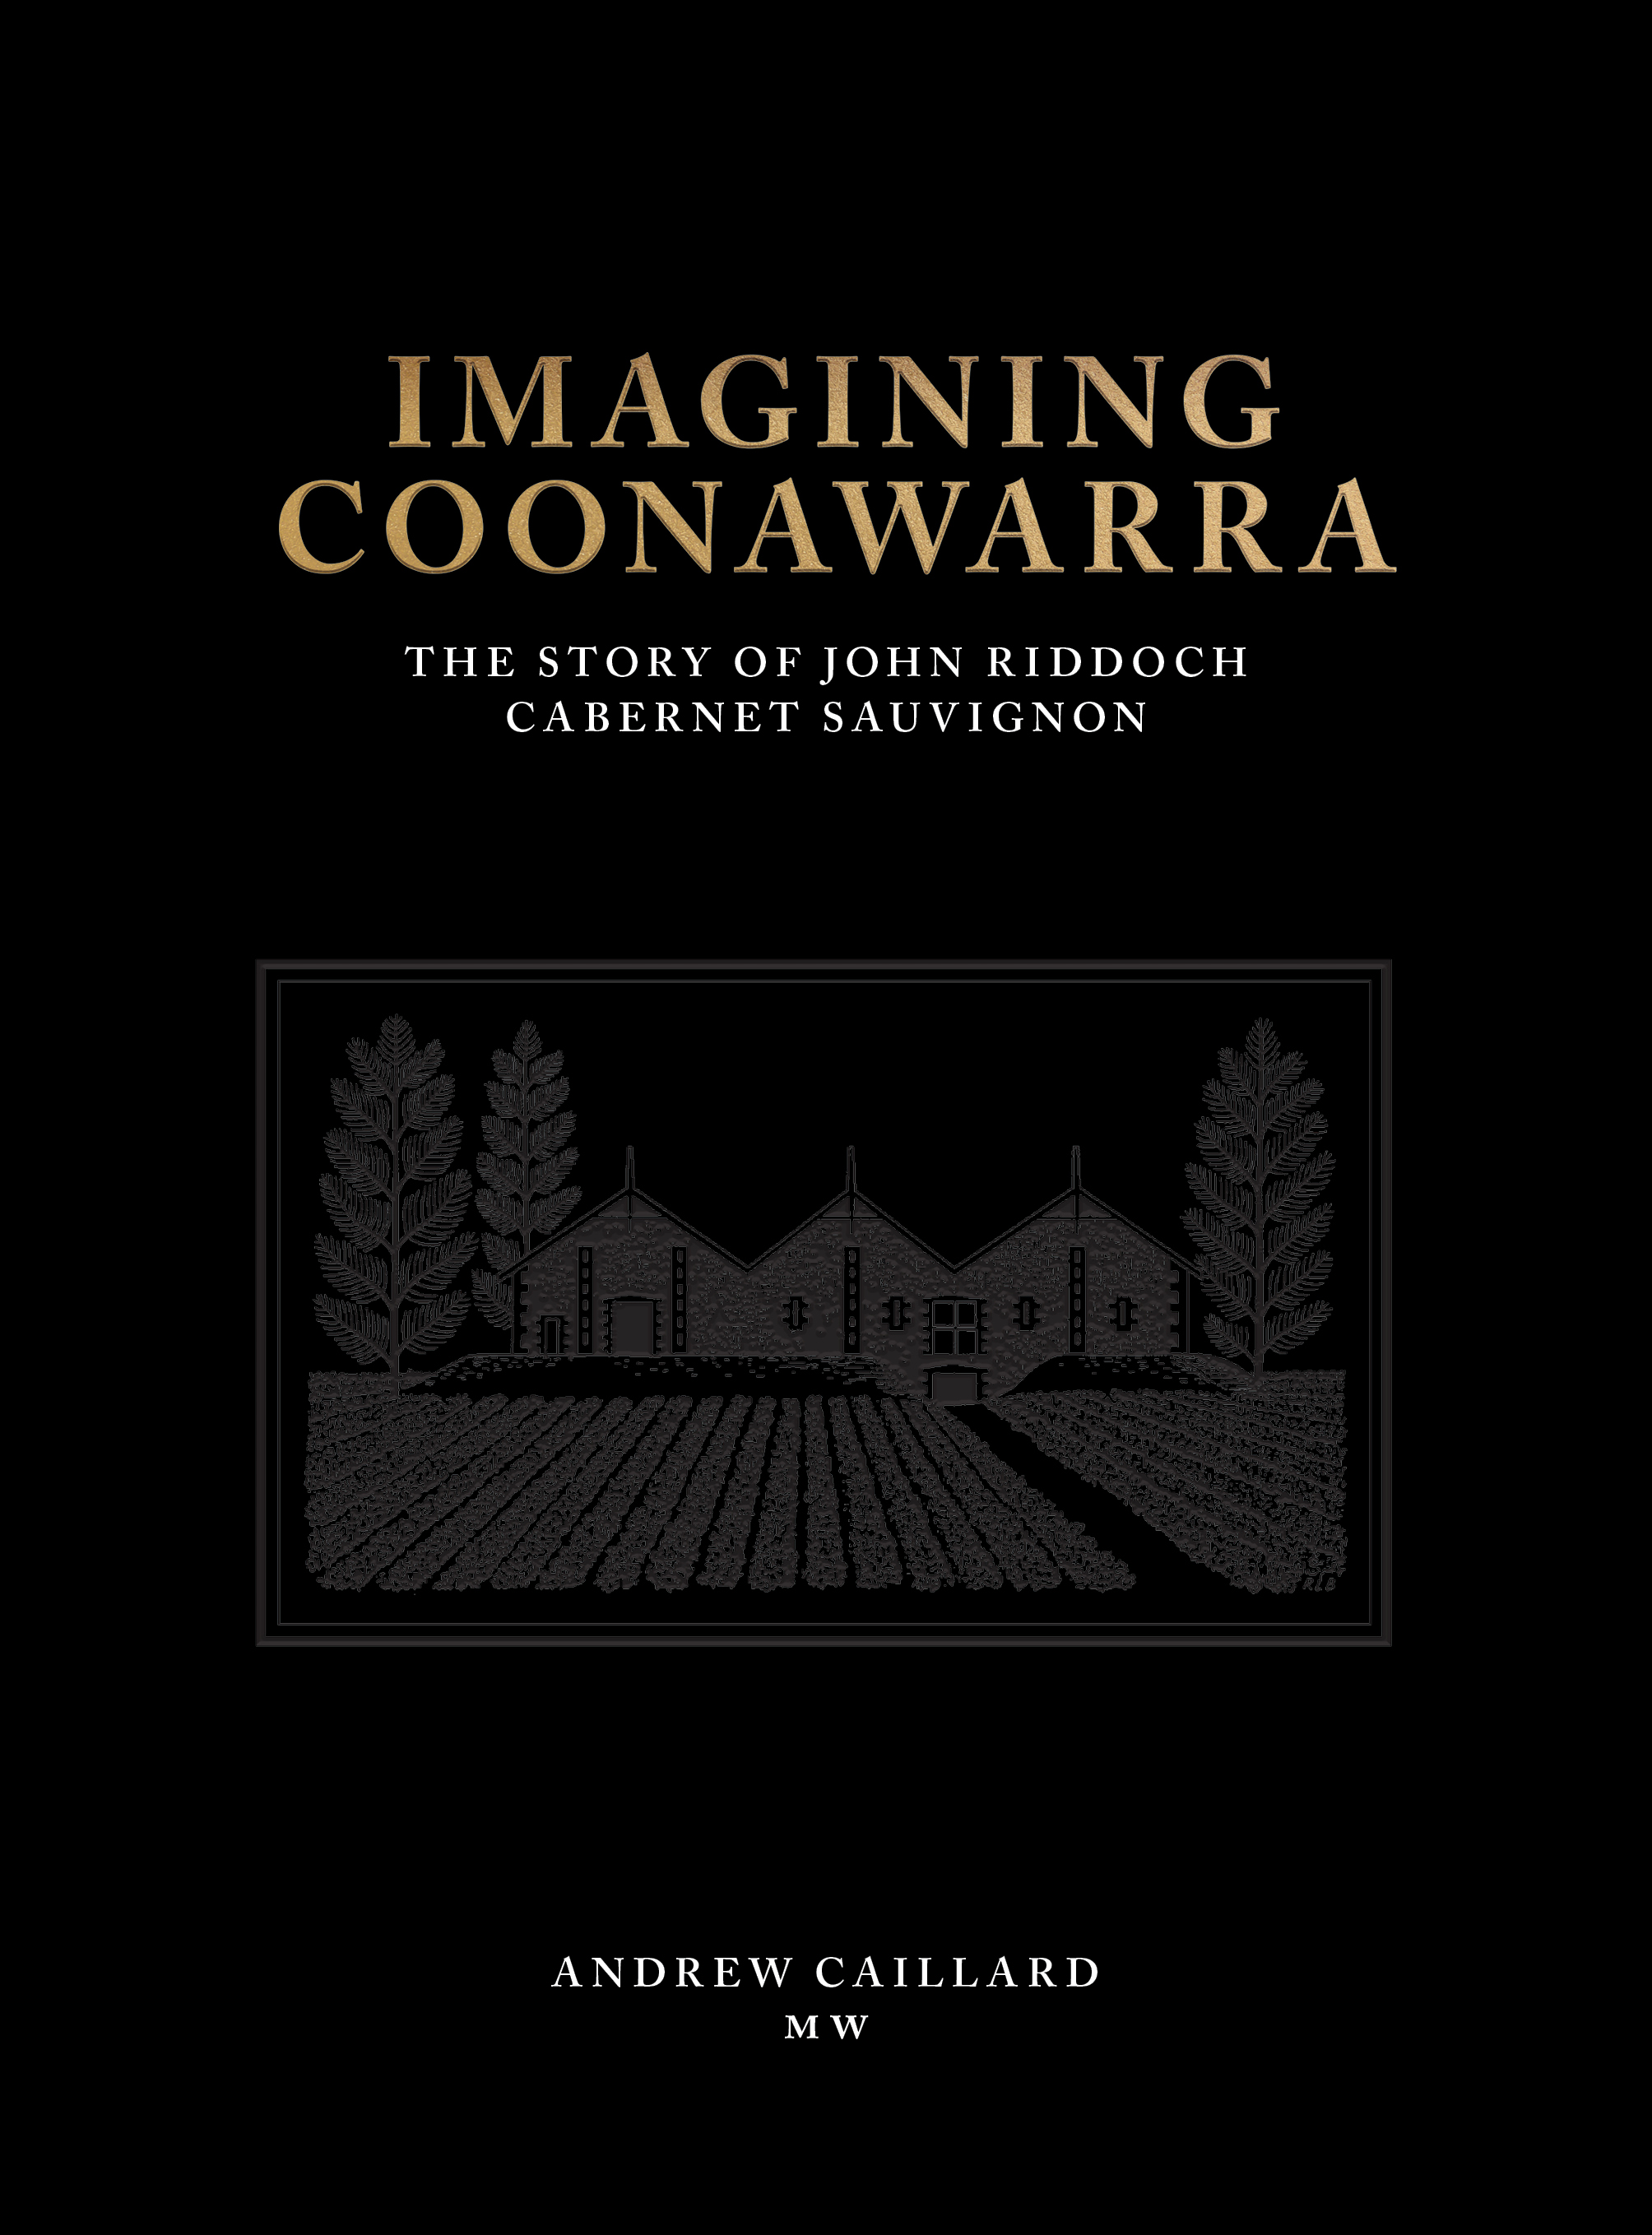 Coonawarra pioneer, John Riddoch, immortalised to celebrate International Cabernet Day as popularity of Cabernet Sauvignon continues to soar.